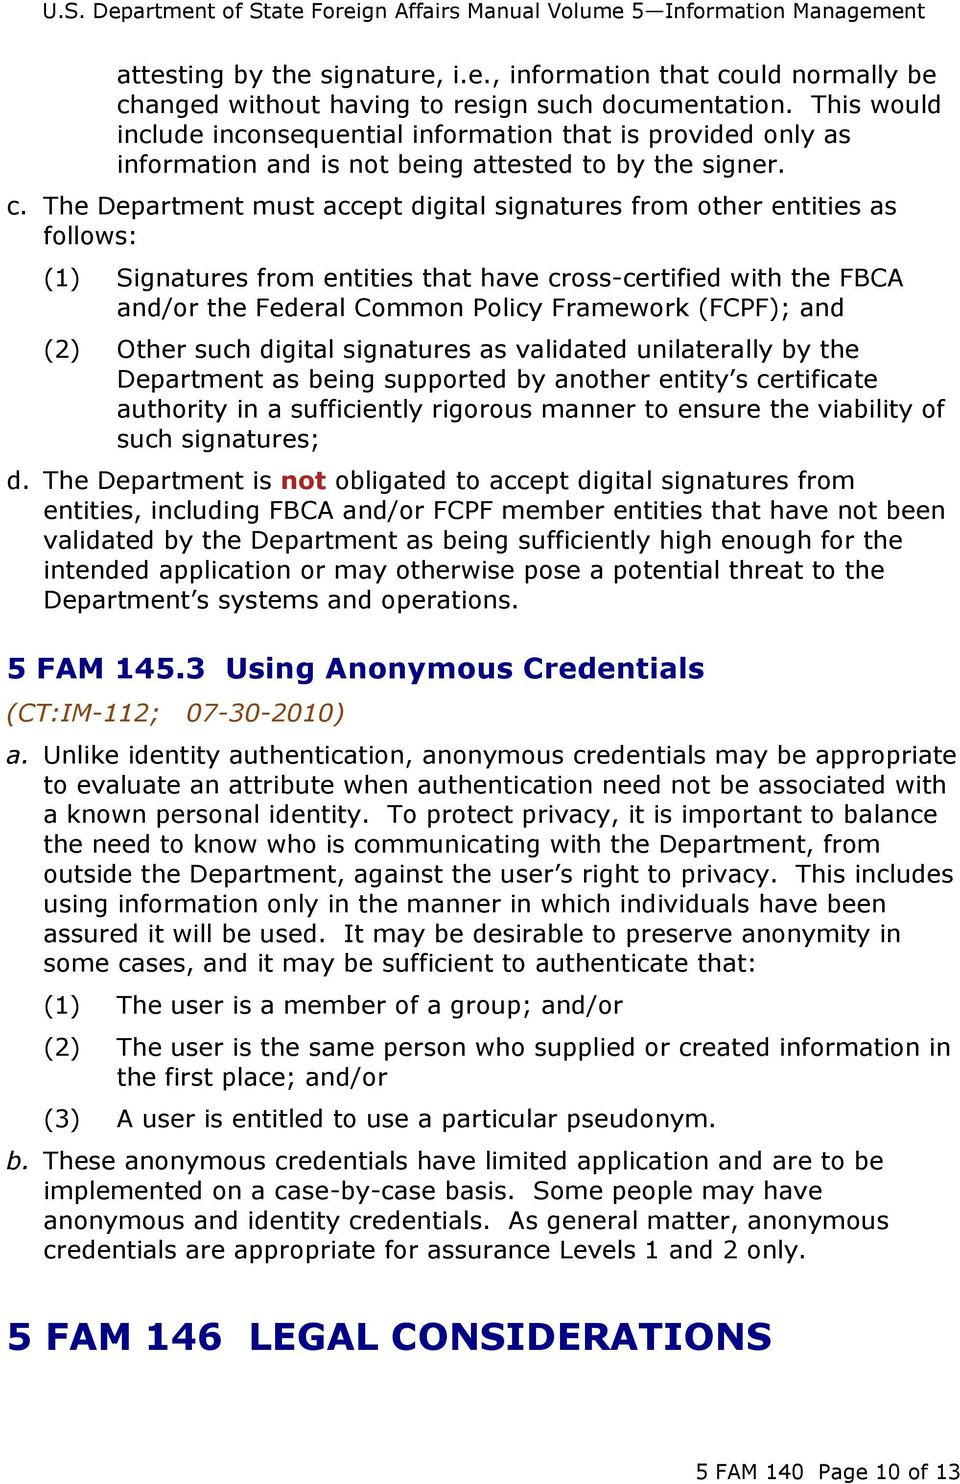 The Department must accept digital signatures from other entities as follows: (1) Signatures from entities that have cross-certified with the FBCA and/or the Federal Common Policy Framework (FCPF);